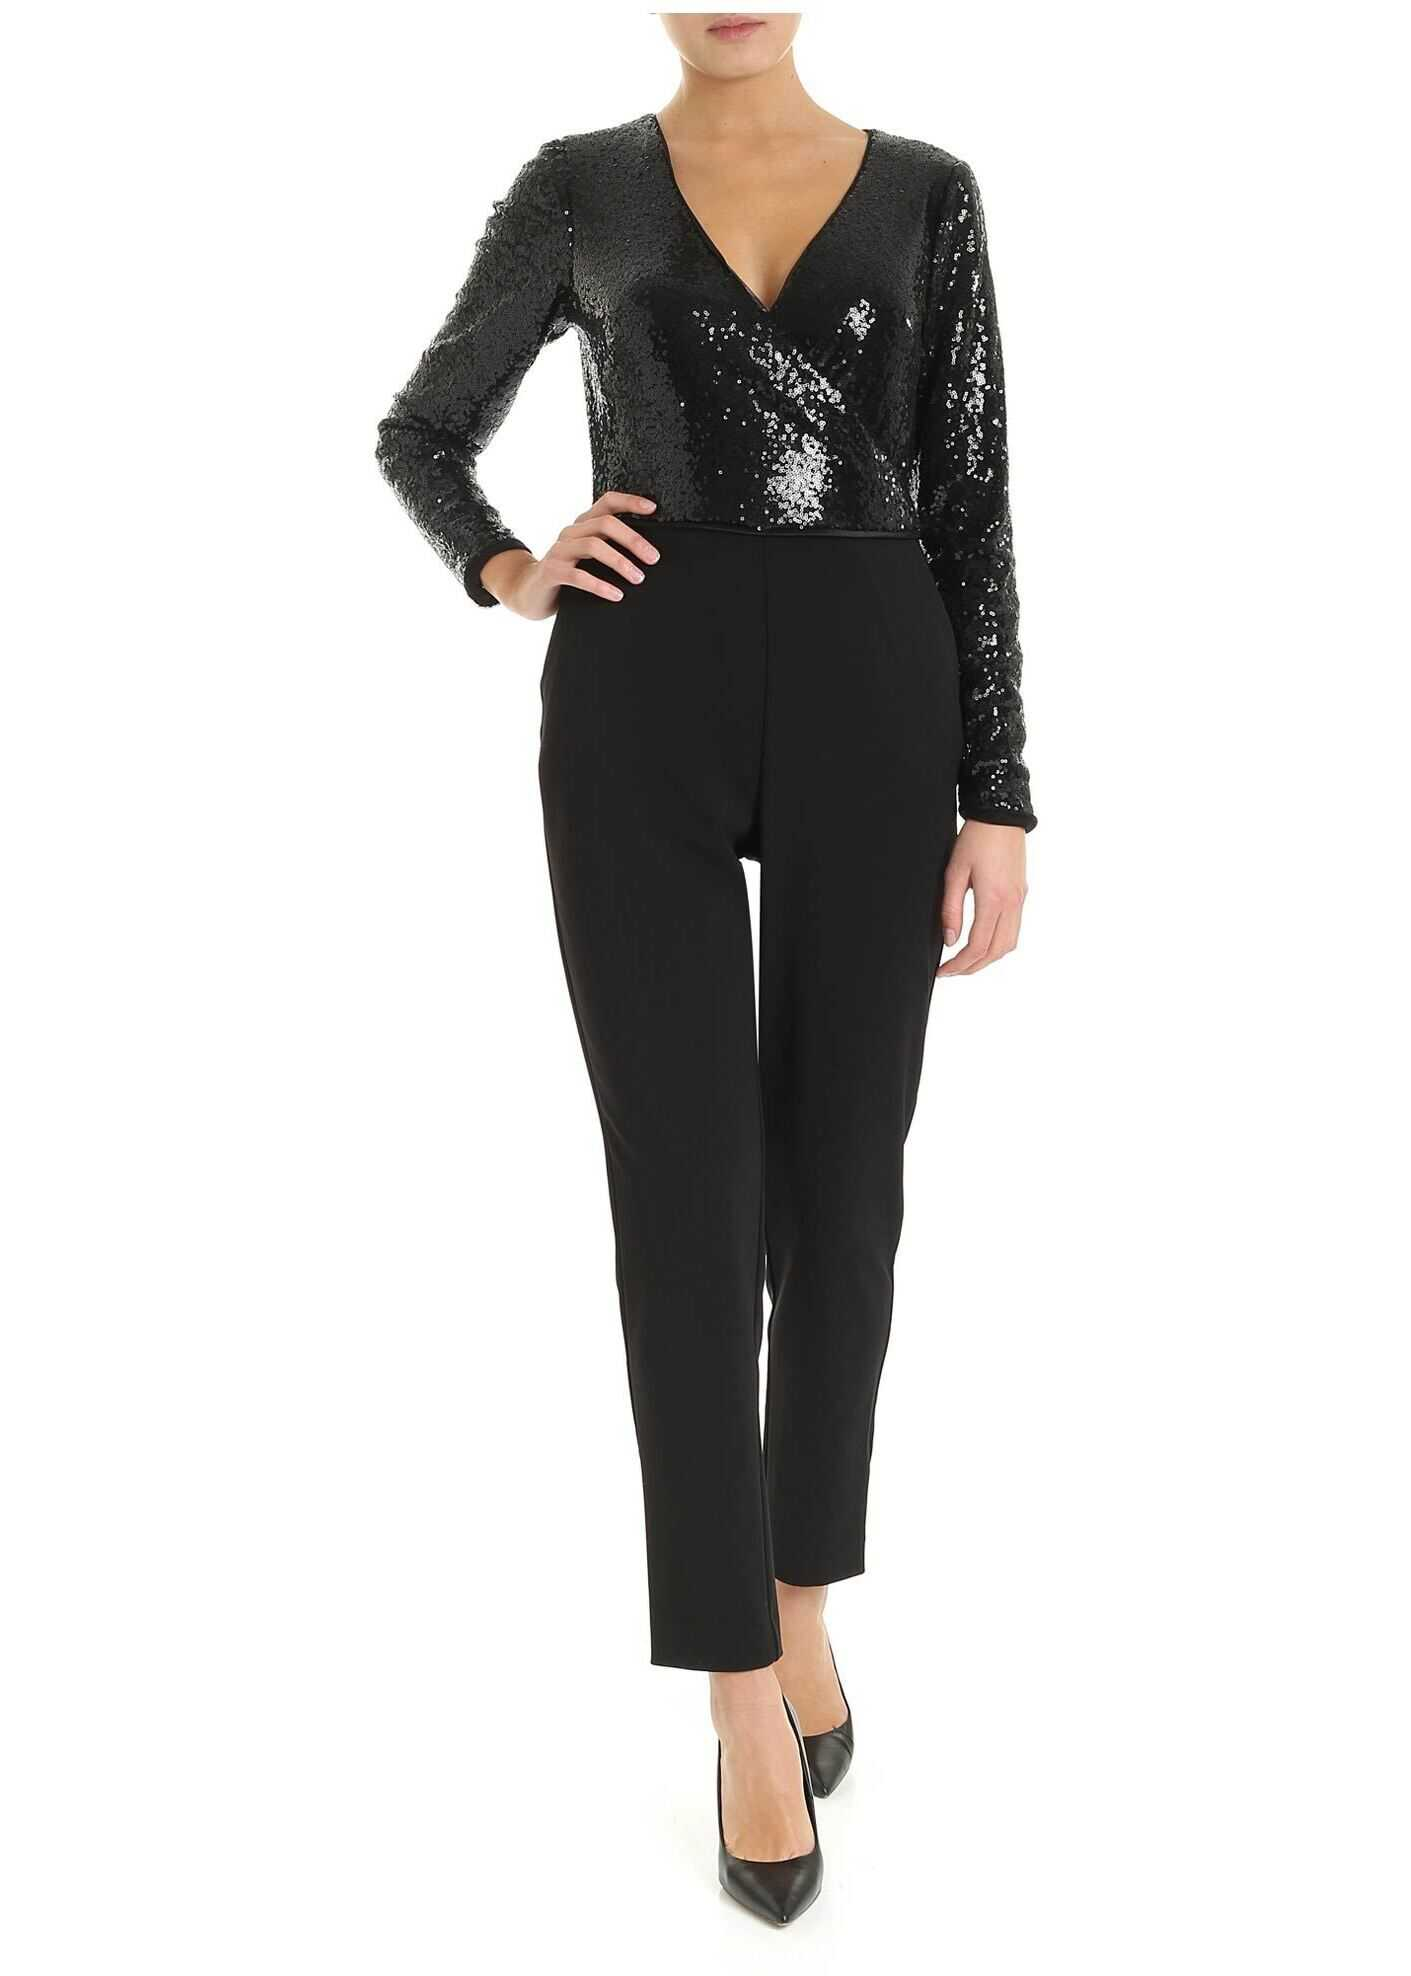 Suit In Black Swith Sequined Top thumbnail